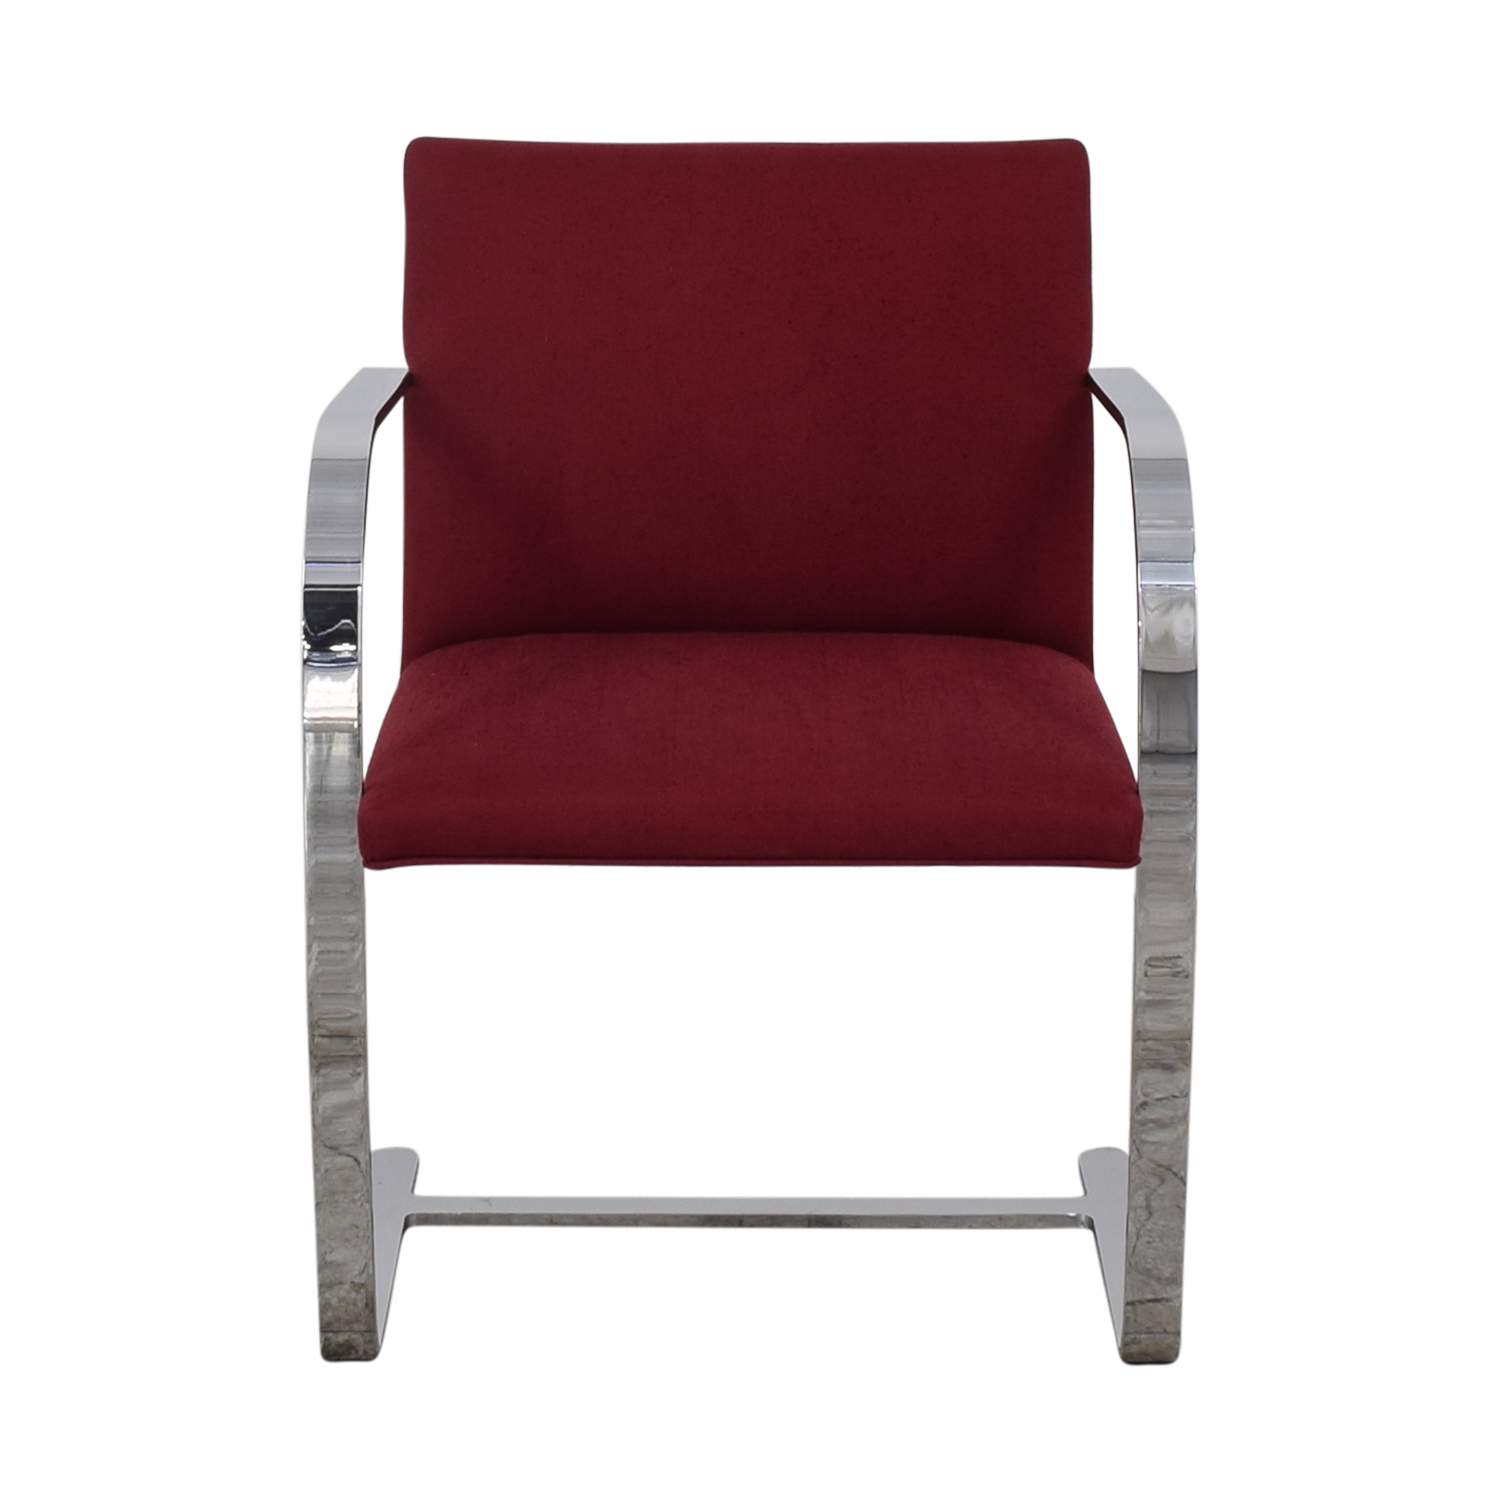 Knoll Knoll BRNO Chair with Flat Bar Frame Chairs